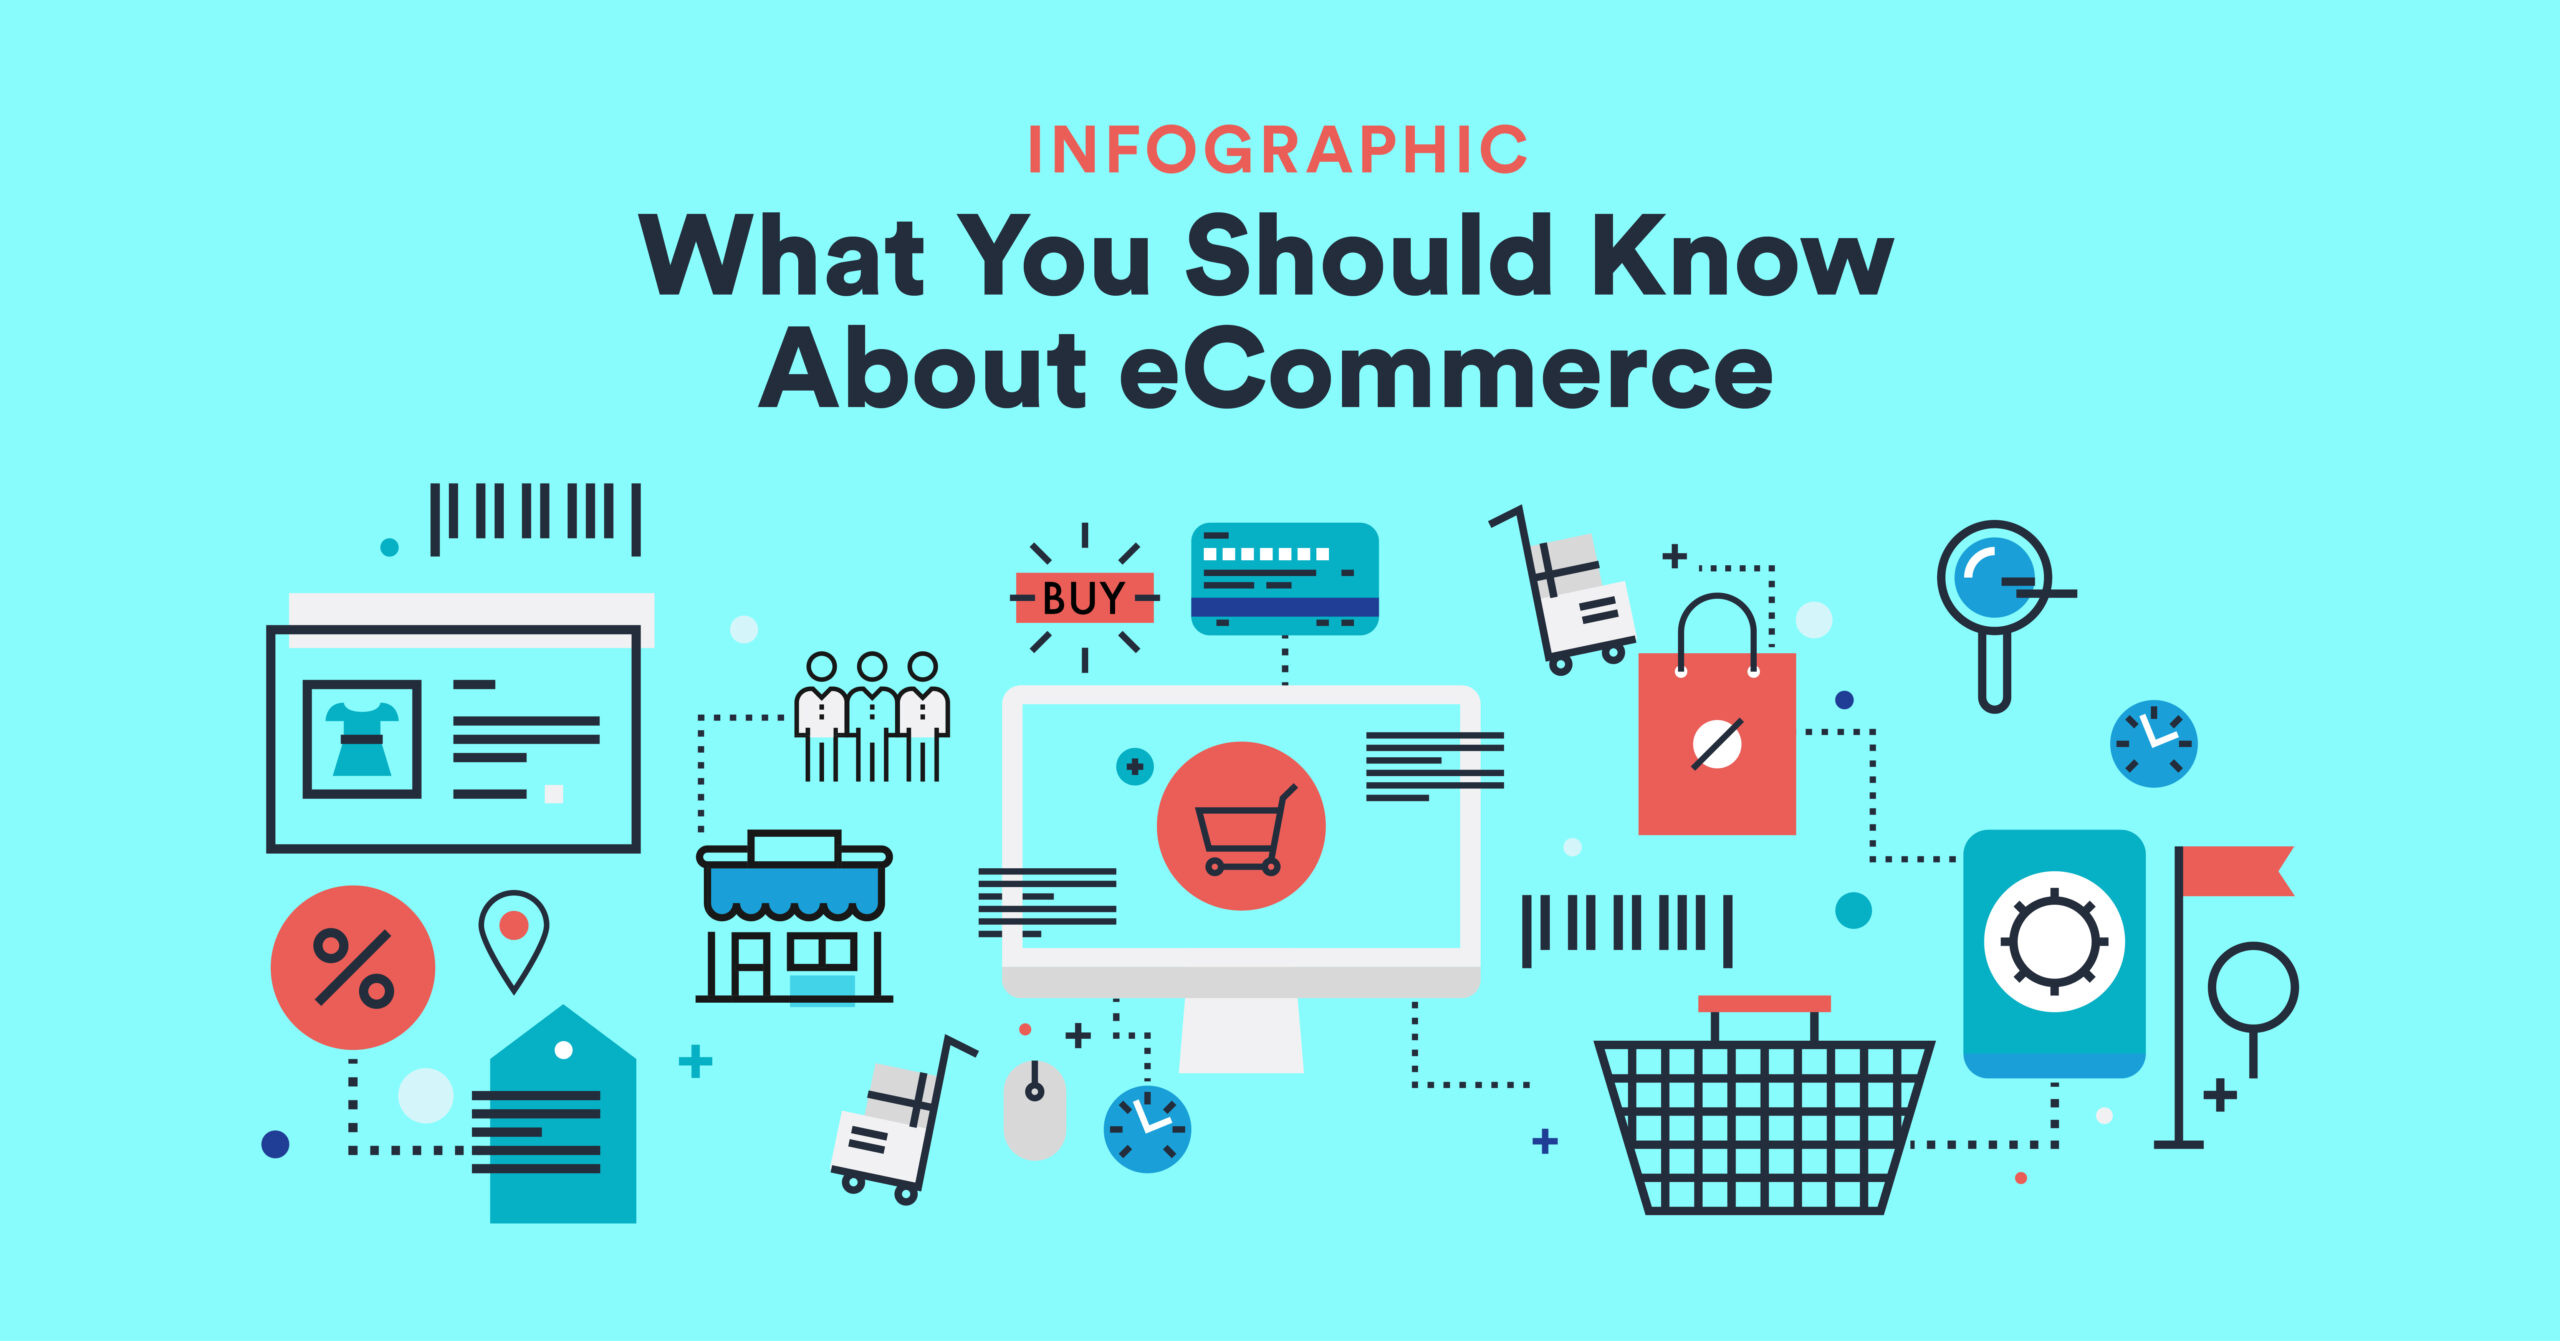 Infographic What You Should Know About eCommerce